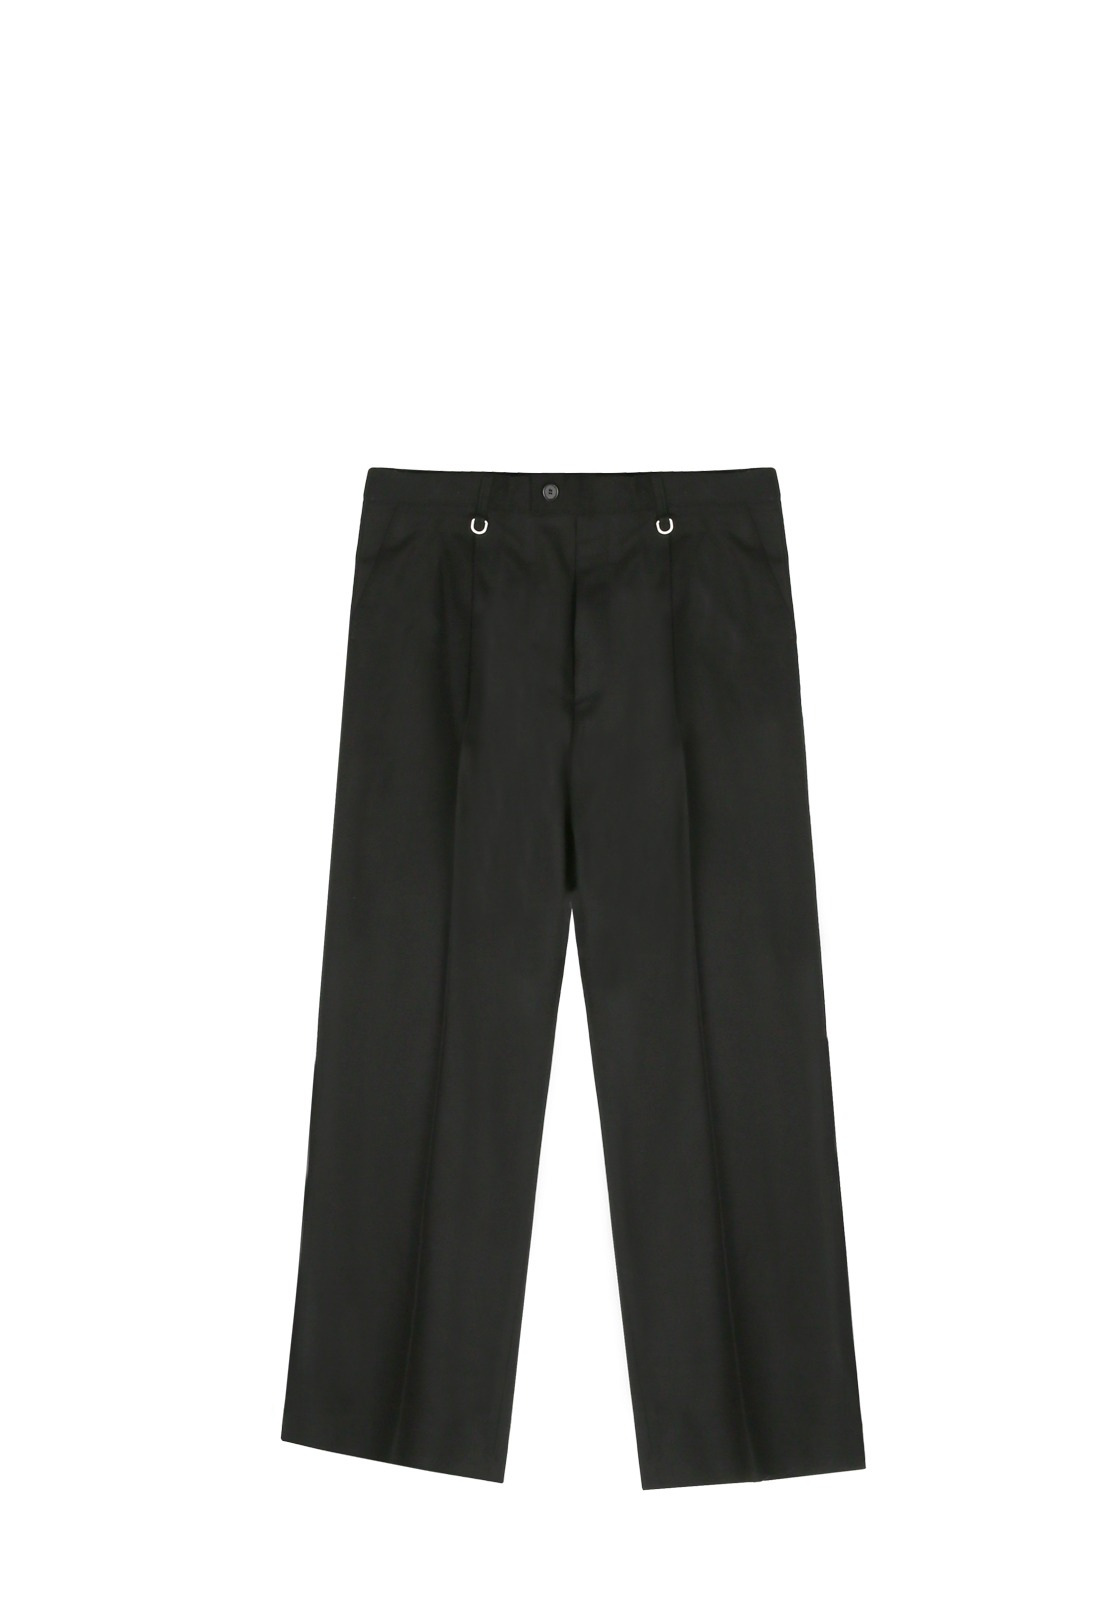 V256 REIMS WOOL WIDE SLACKS  BLACK